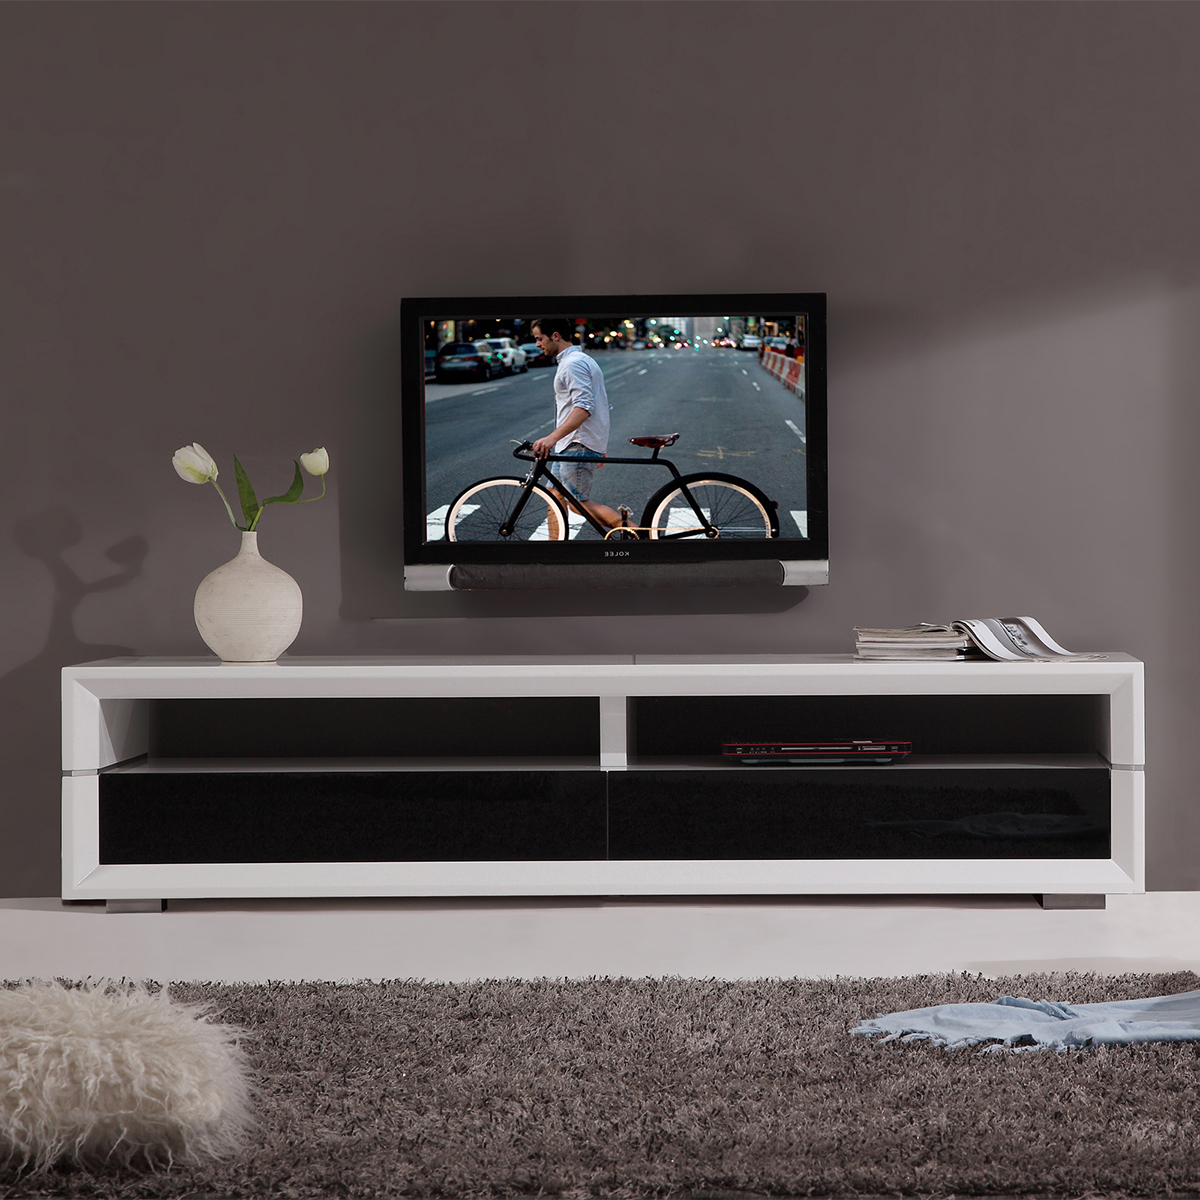 Dark Tv Stands With Favorite Dark Tv Stands Wood Corner Stand Uk Brown Wooden Amazon Walnut For (View 7 of 20)